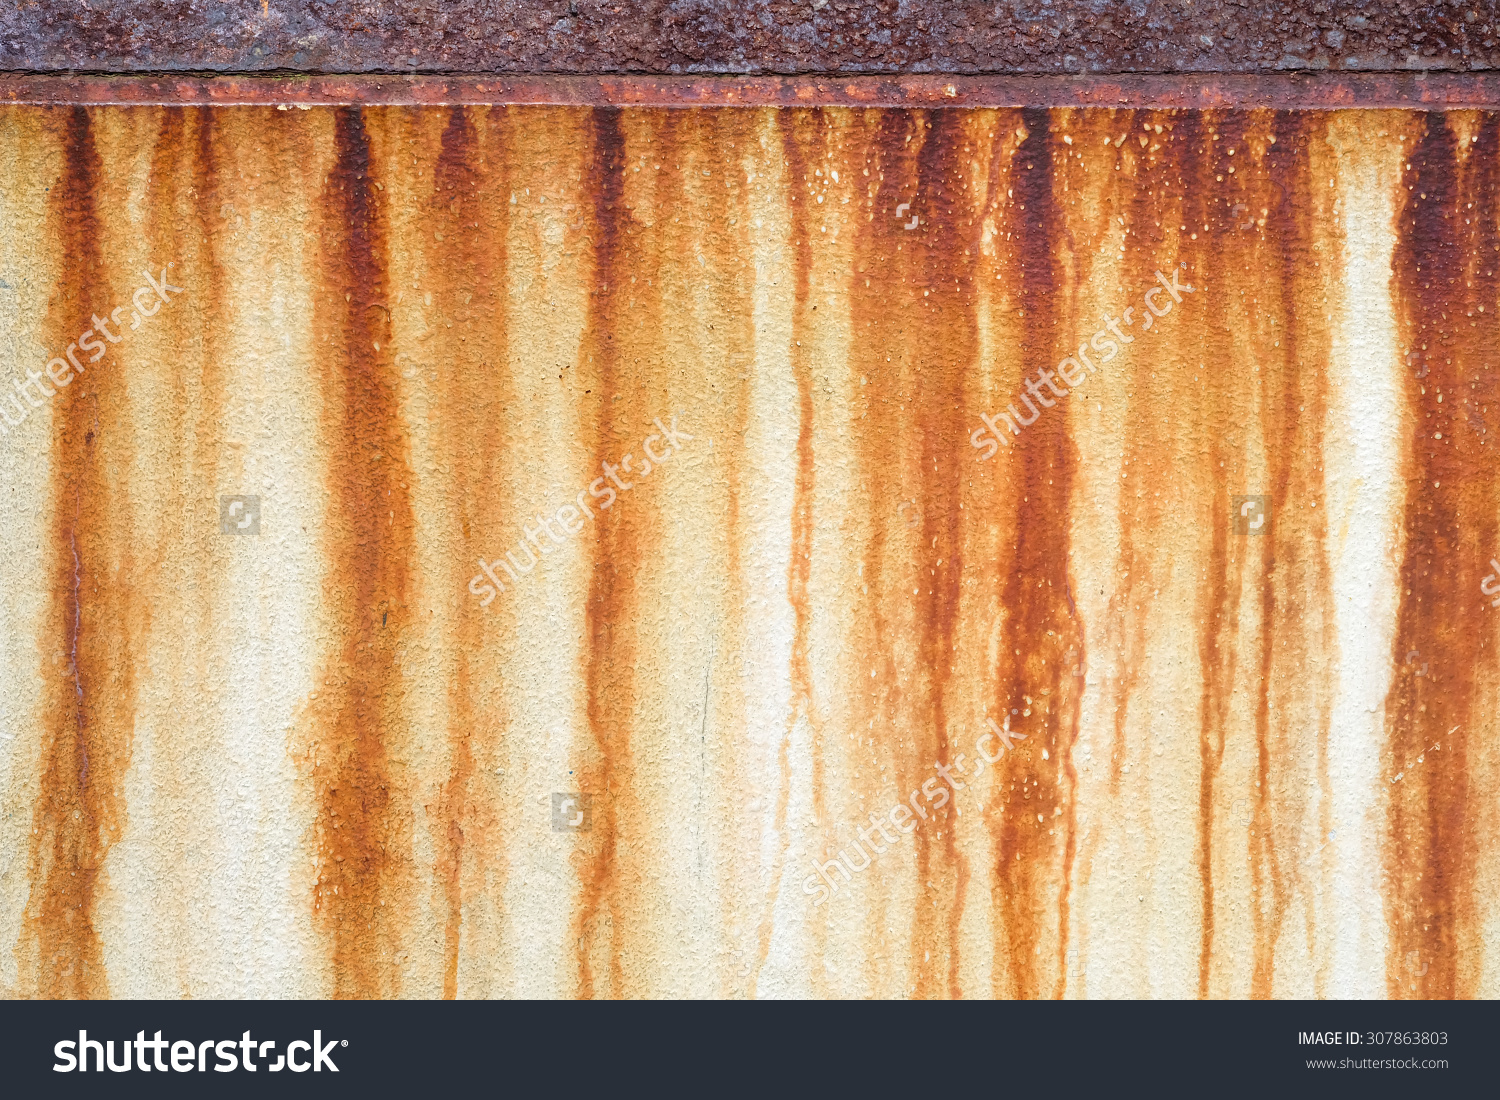 Rust Stains On Wall Stock Photo 307863803.